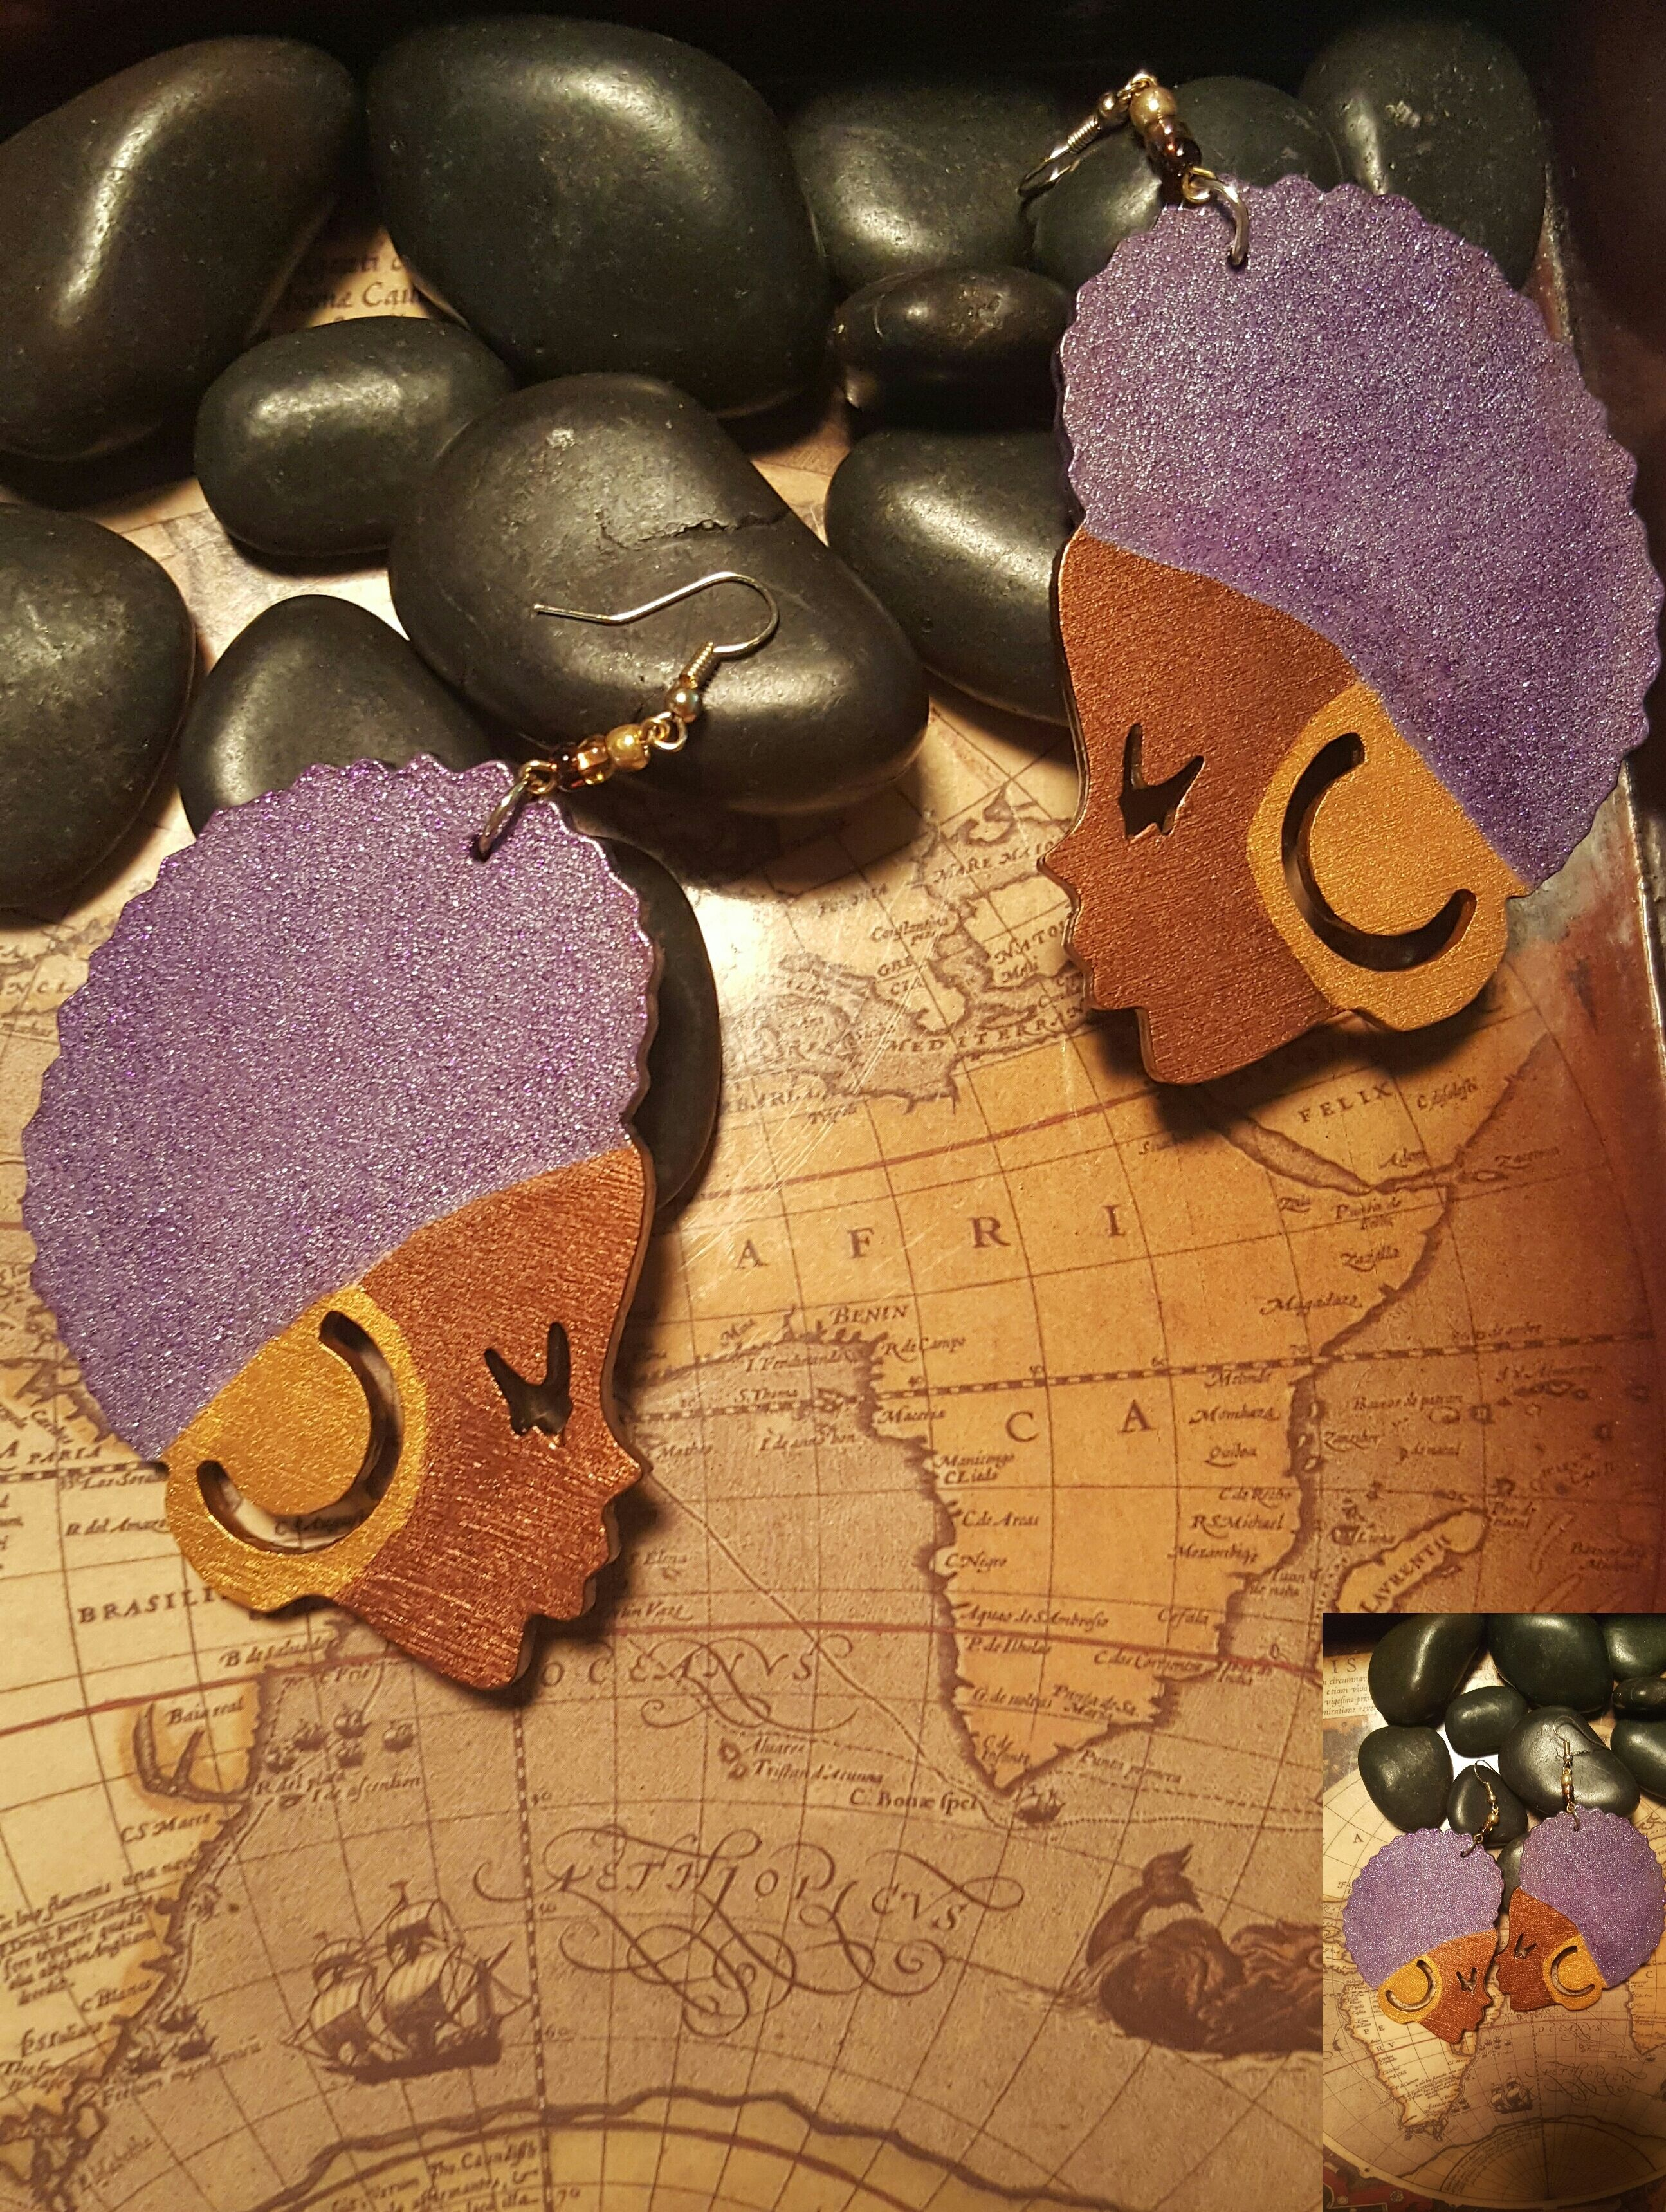 Rock your fro and these hot Afro Chic dangle earrings.  Hand painted in Gold, Bronze and Diva Purple.     3x3 inches     Dare to Be Original | Shop this product here: http://spreesy.com/3rdEyeDiva/504 | Shop all of our products at http://spreesy.com/3rdEyeDiva    | Pinterest selling powered by Spreesy.com